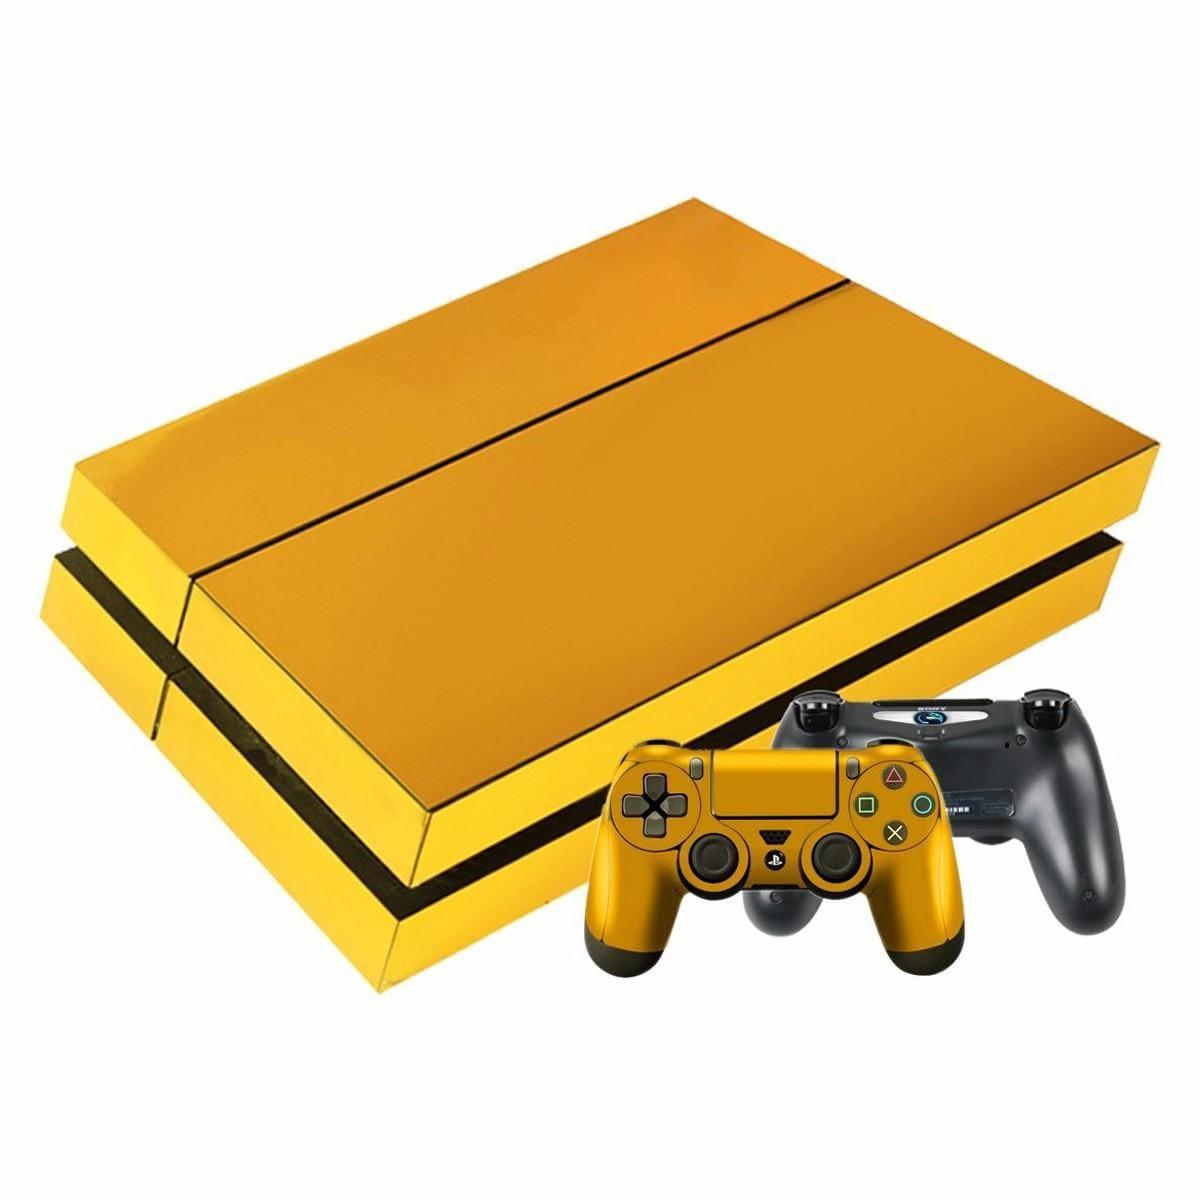 Gold Plating PS4 Slim Skin Sticker for Console And Controller